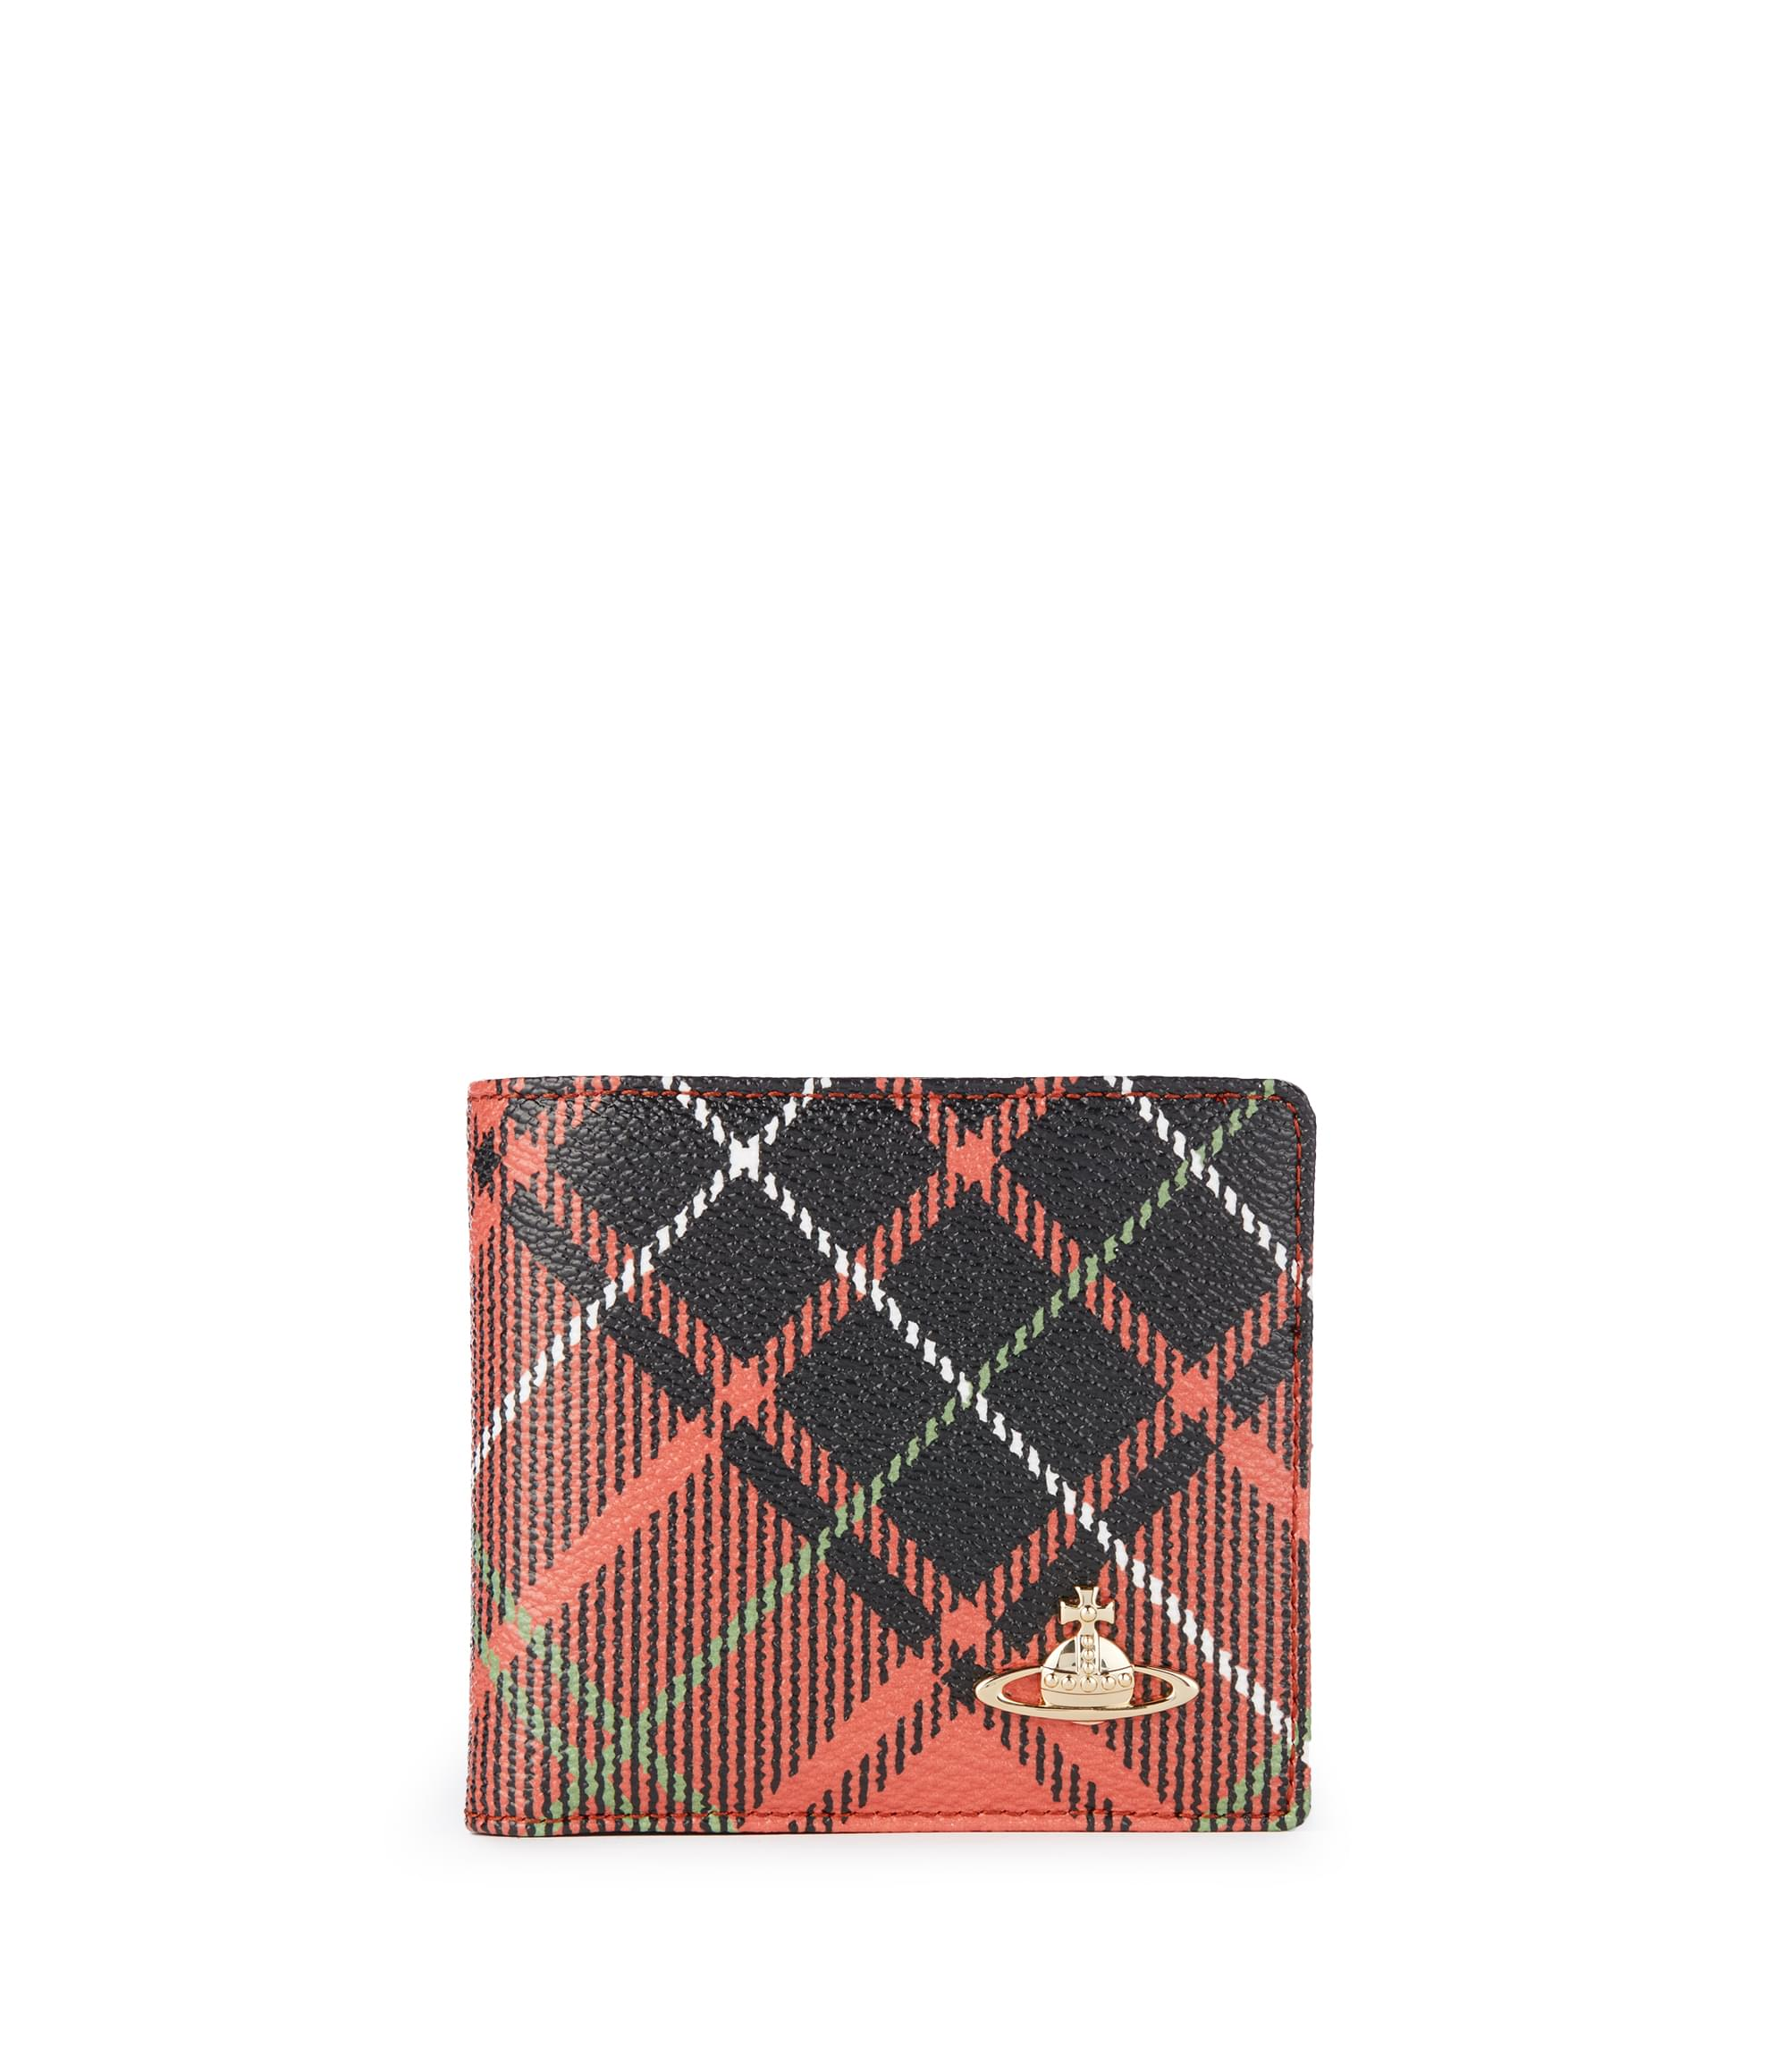 Vivienne Westwood Derby Wallet With Coin Pocket 51010009 Charlot